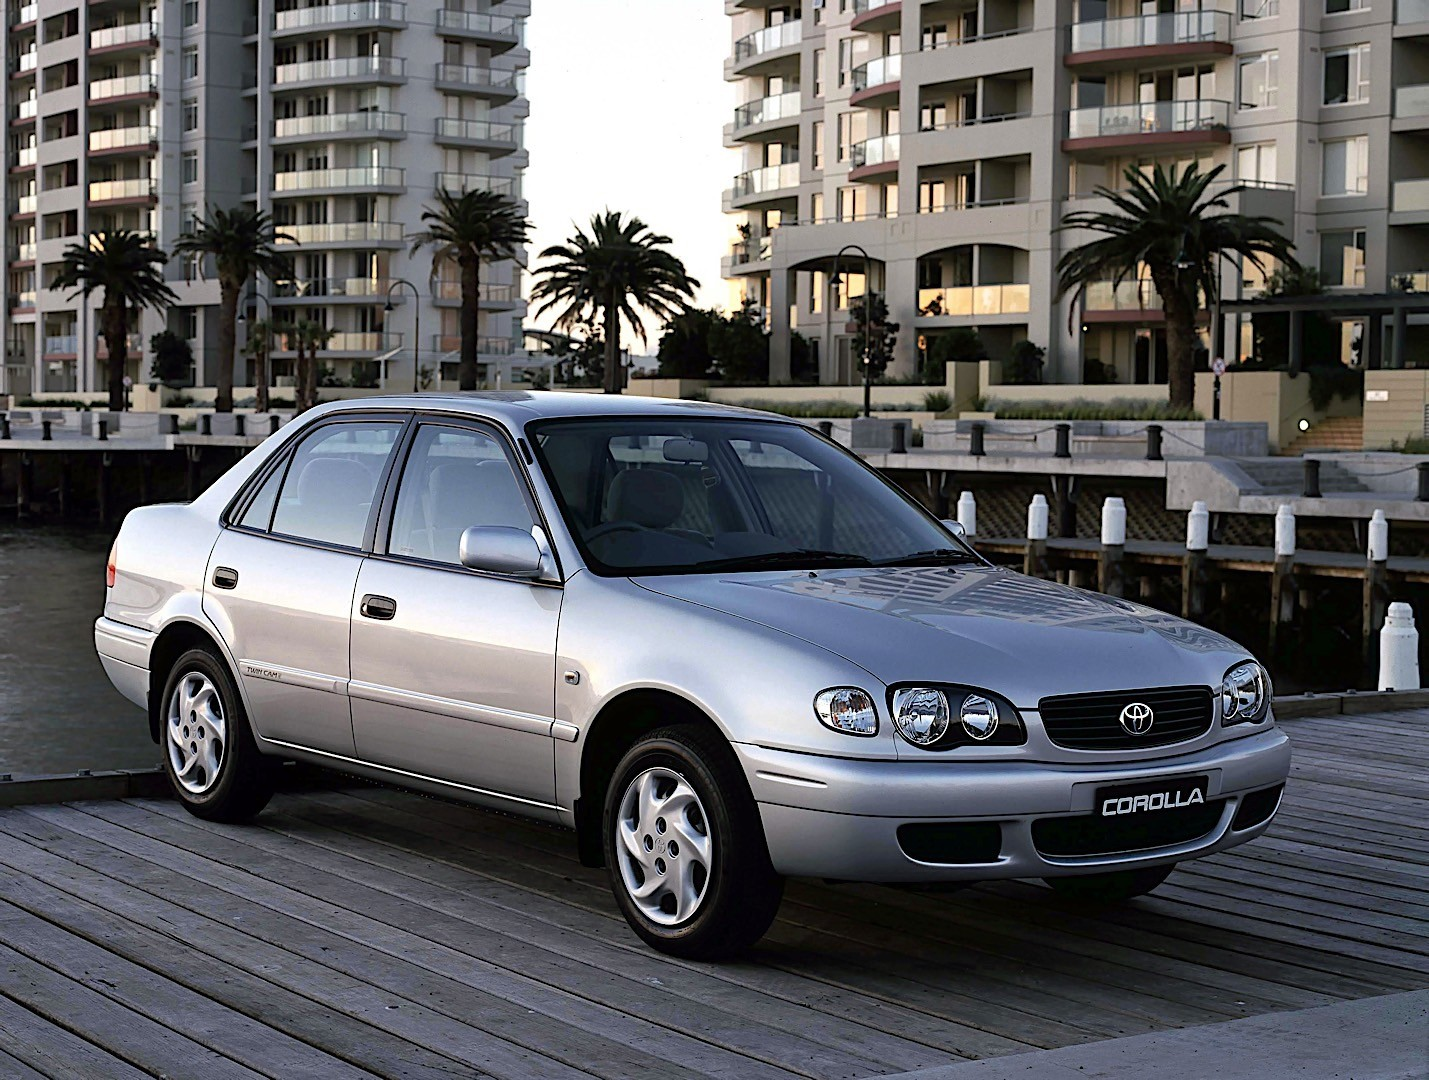 Toyota Corolla Mpg >> TOYOTA Corolla Sedan specs & photos - 2000, 2001, 2002 - autoevolution